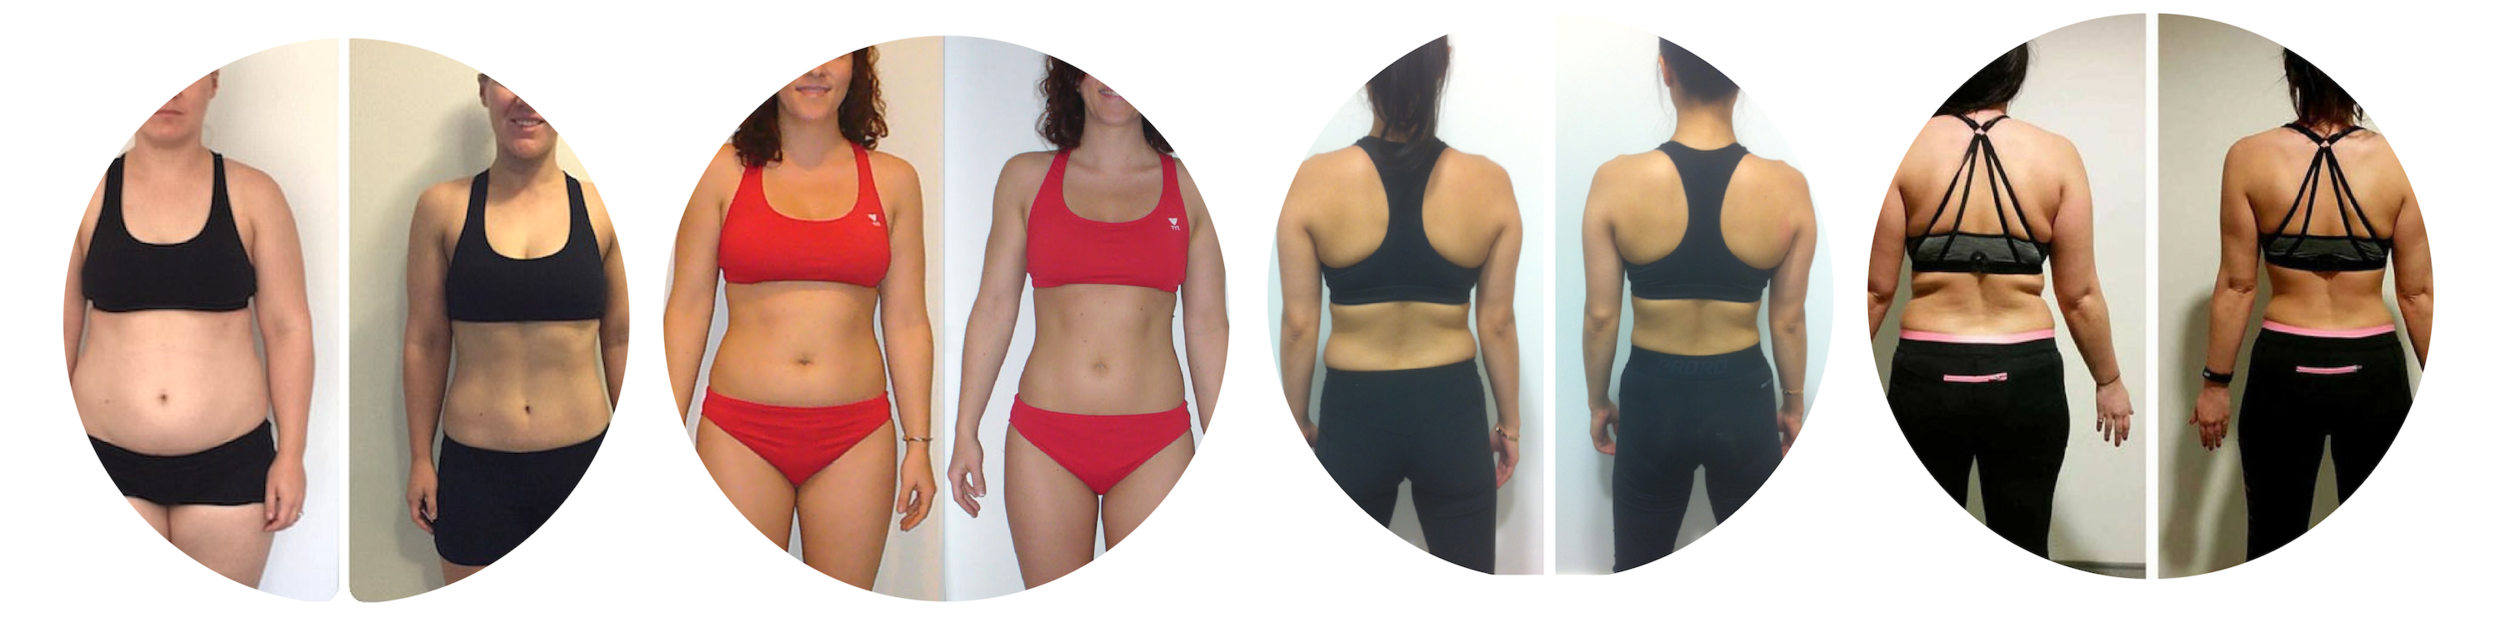 Personal Training Results pictures.png